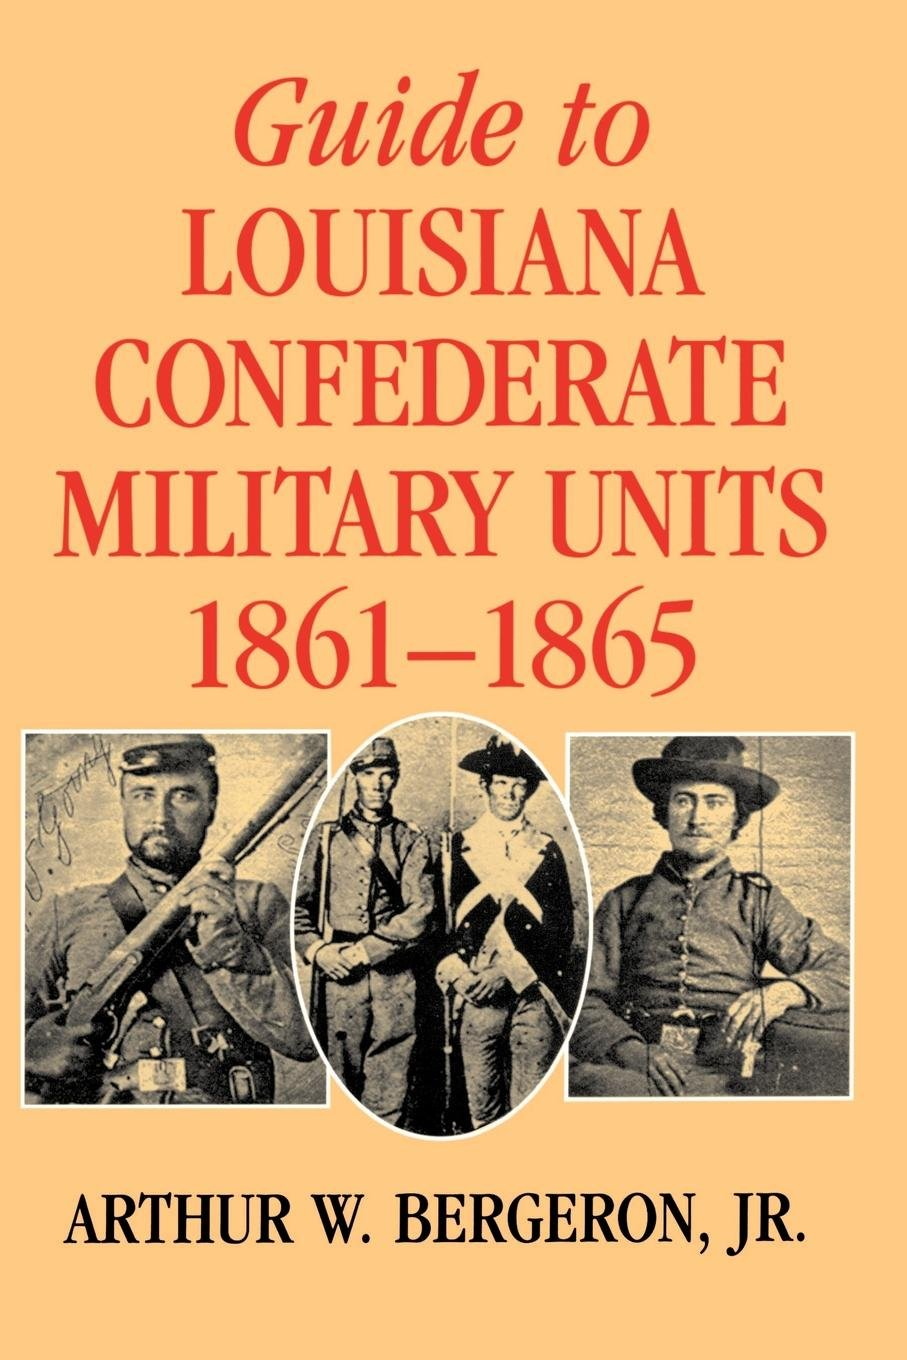 Guide to Louisiana Confederate Military Units